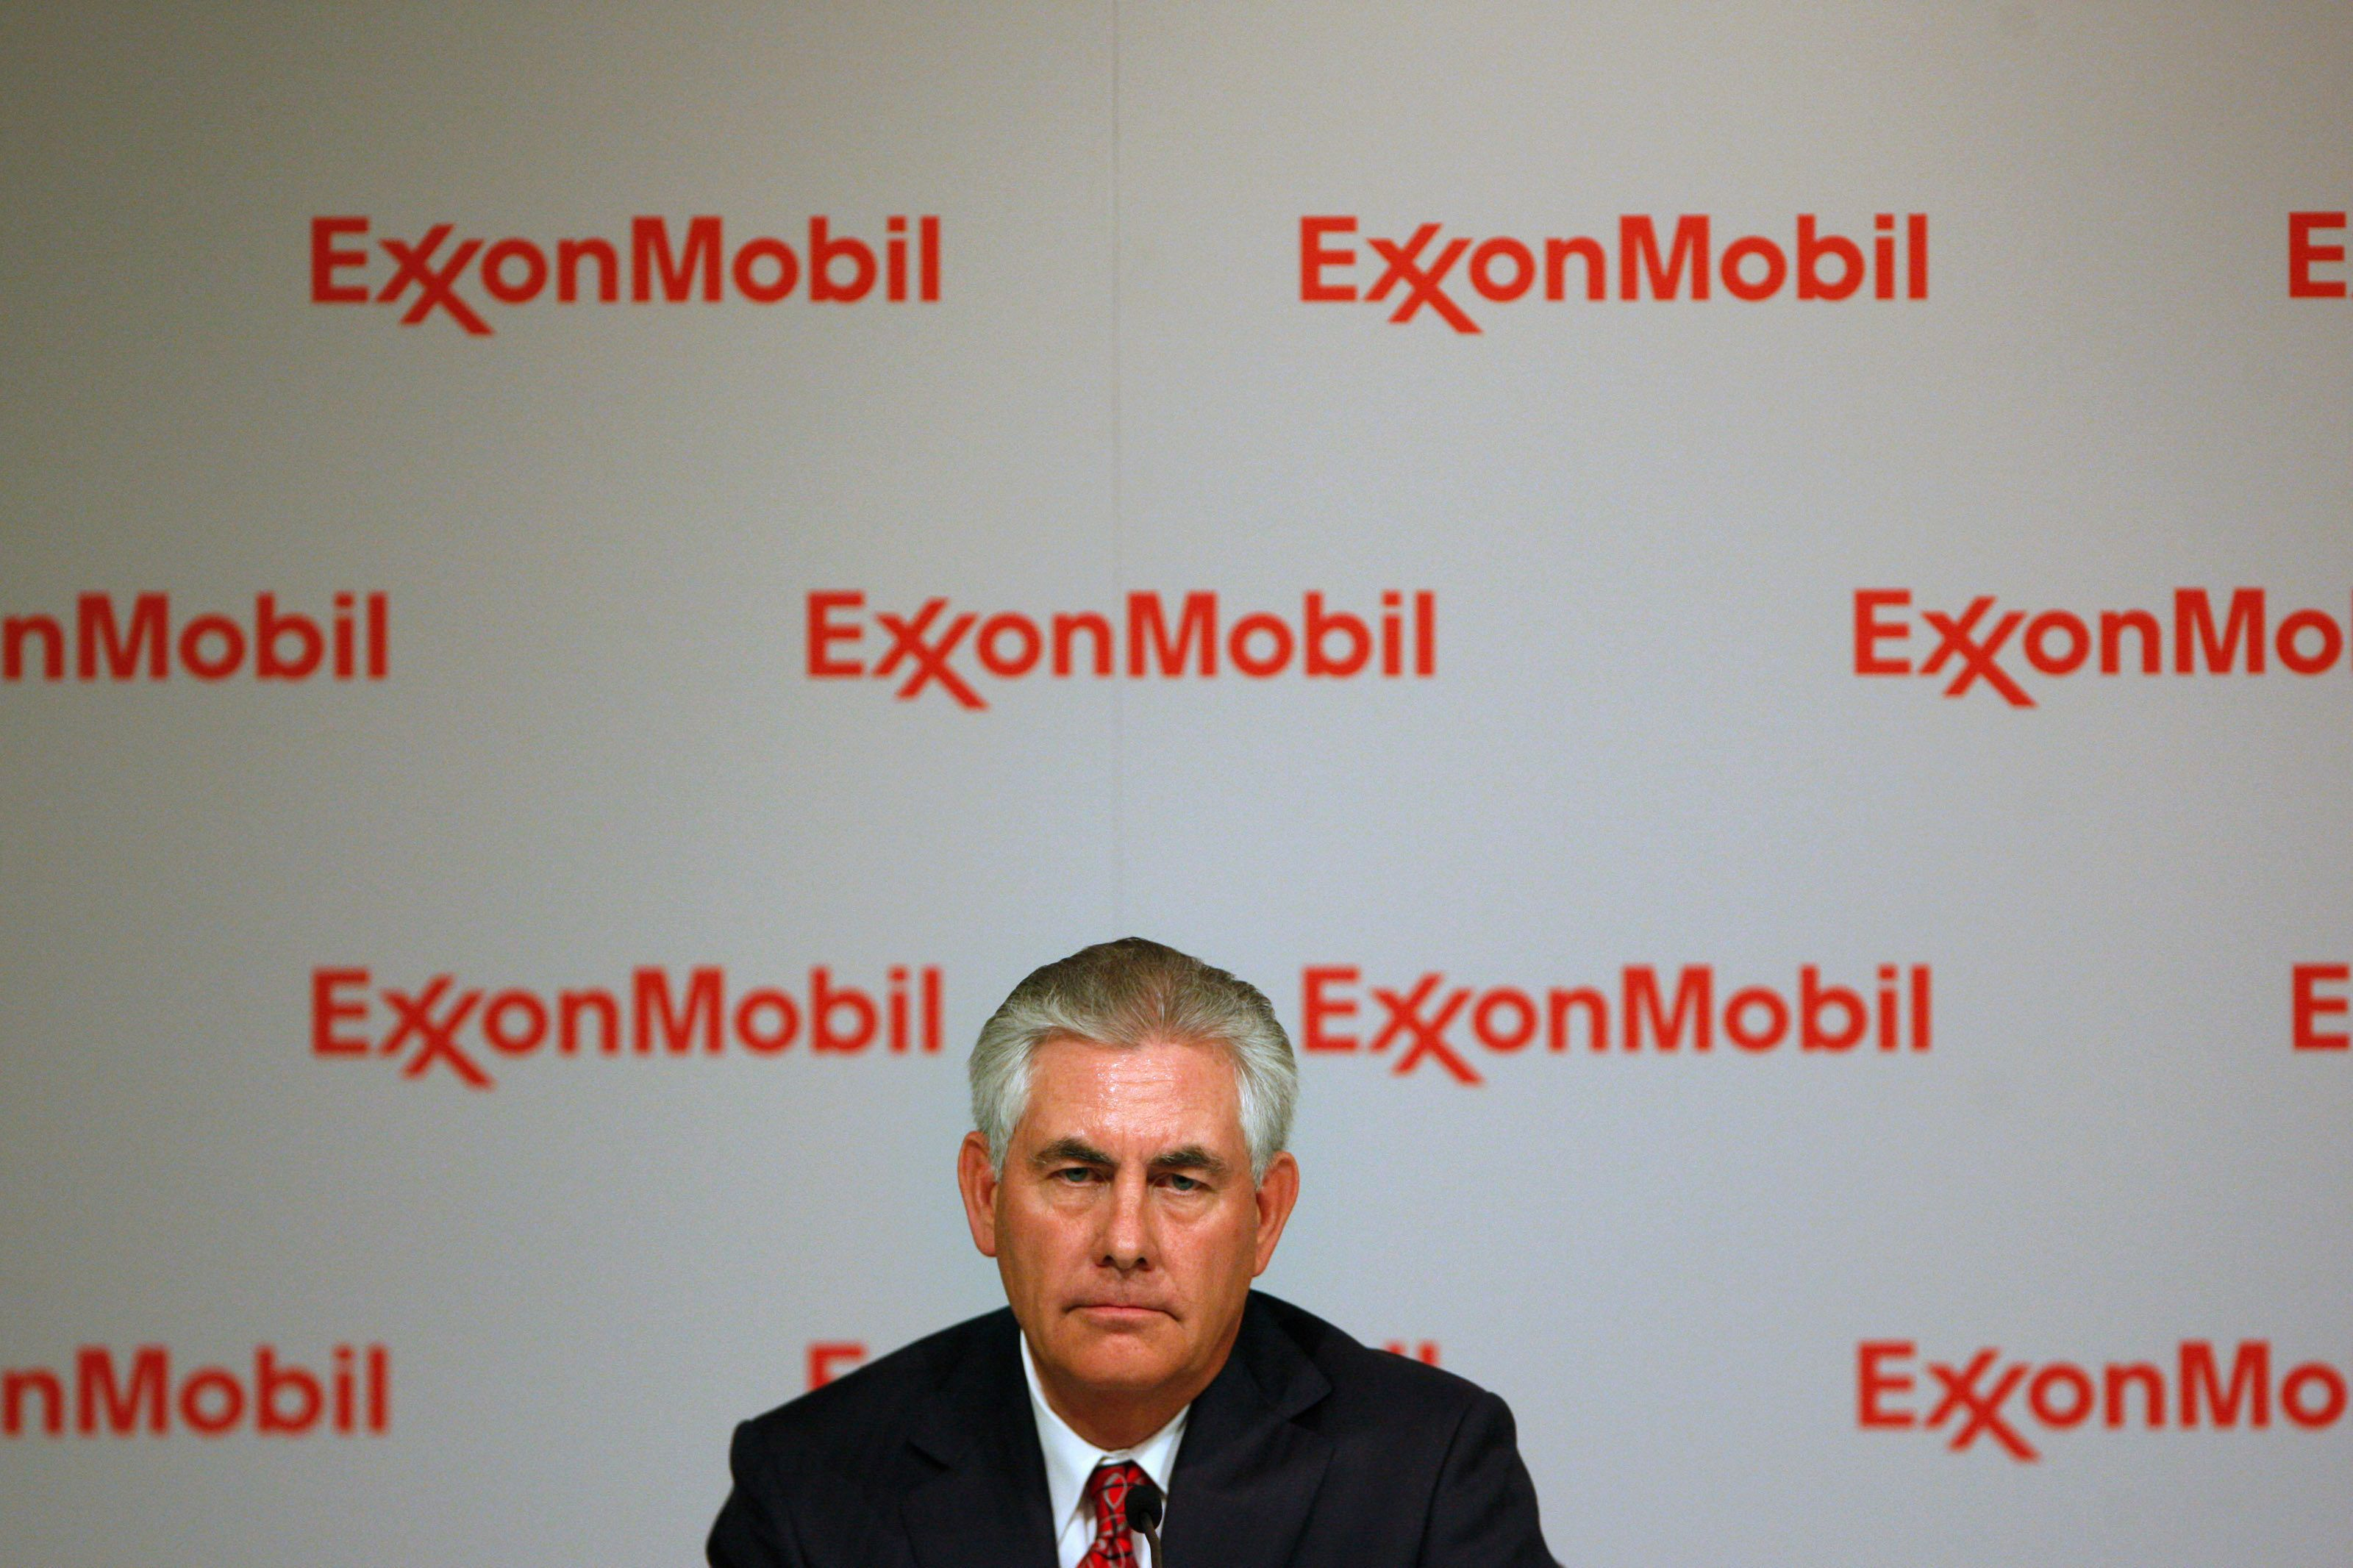 Exxon Mobil CEO Rex W. Tillerson addresses the media at a news conference at the conclusion of the Exxon Mobil Shareholders Meeting in Dallas, Texas May 27, 2009. REUTERS/Jessica Rinaldi (UNITED STATES BUSINESS SOCIETY)